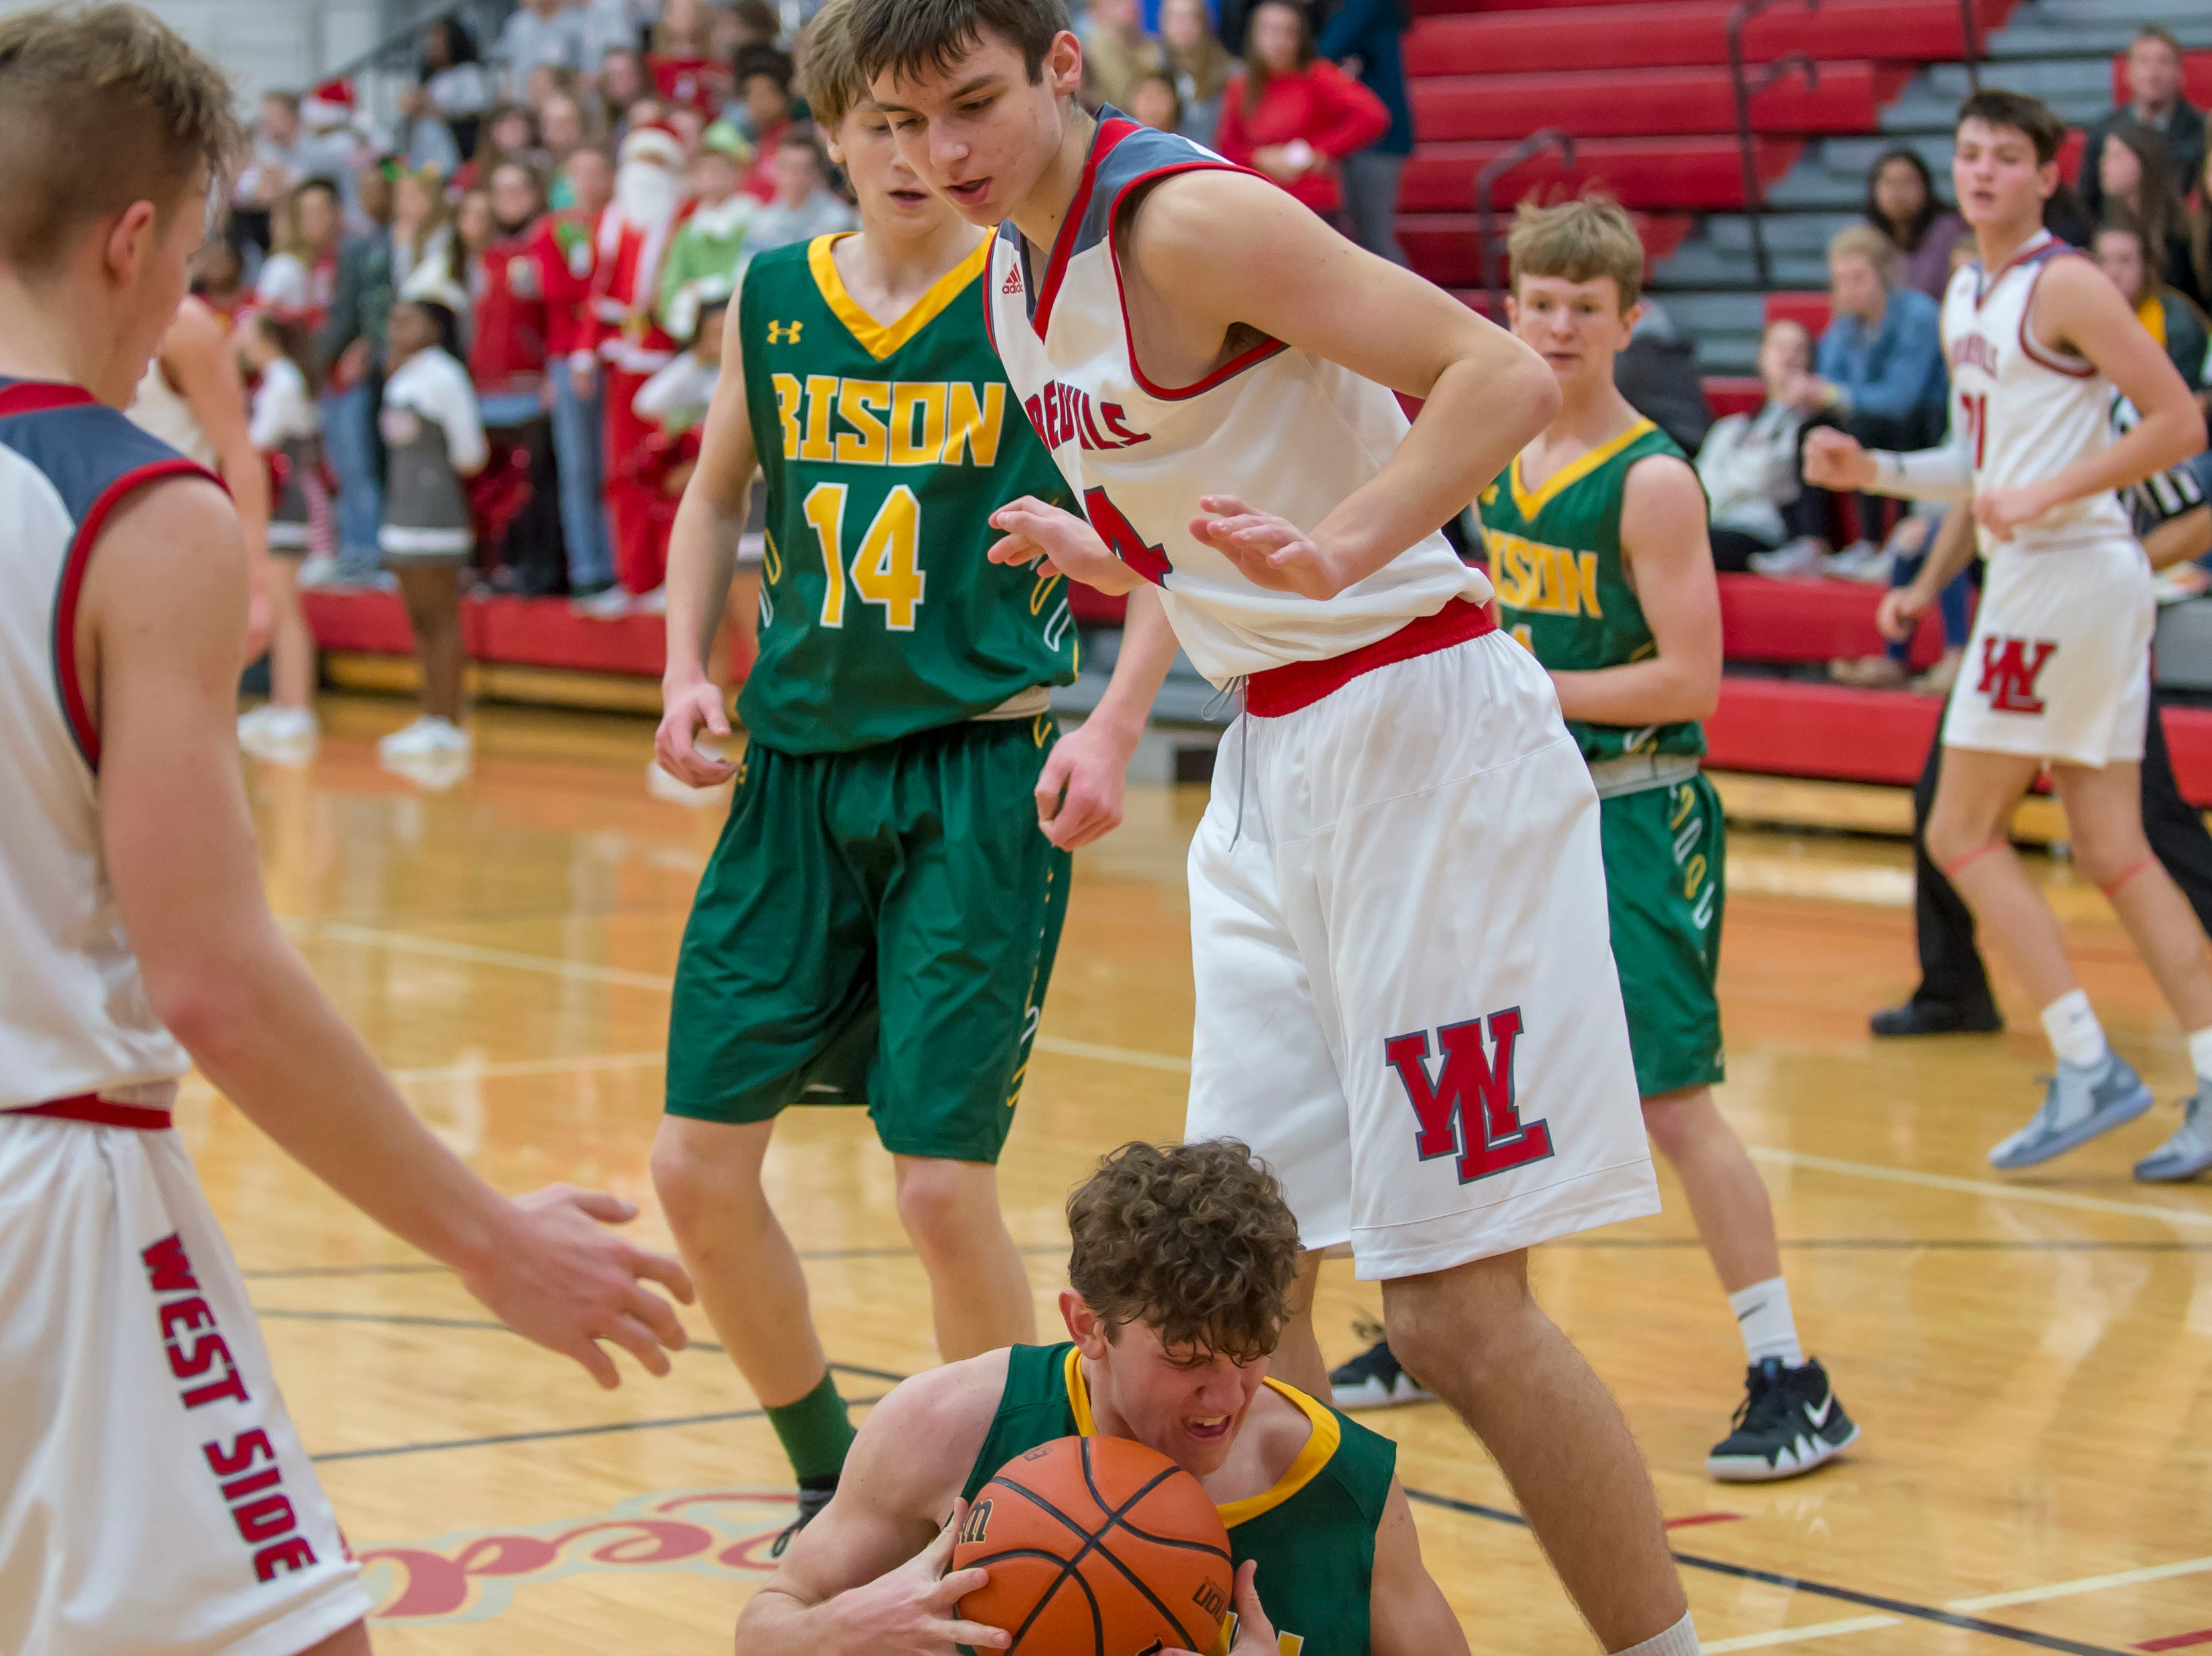 Action from the Benton Central at West Lafayette basketball game on December 14, 2018